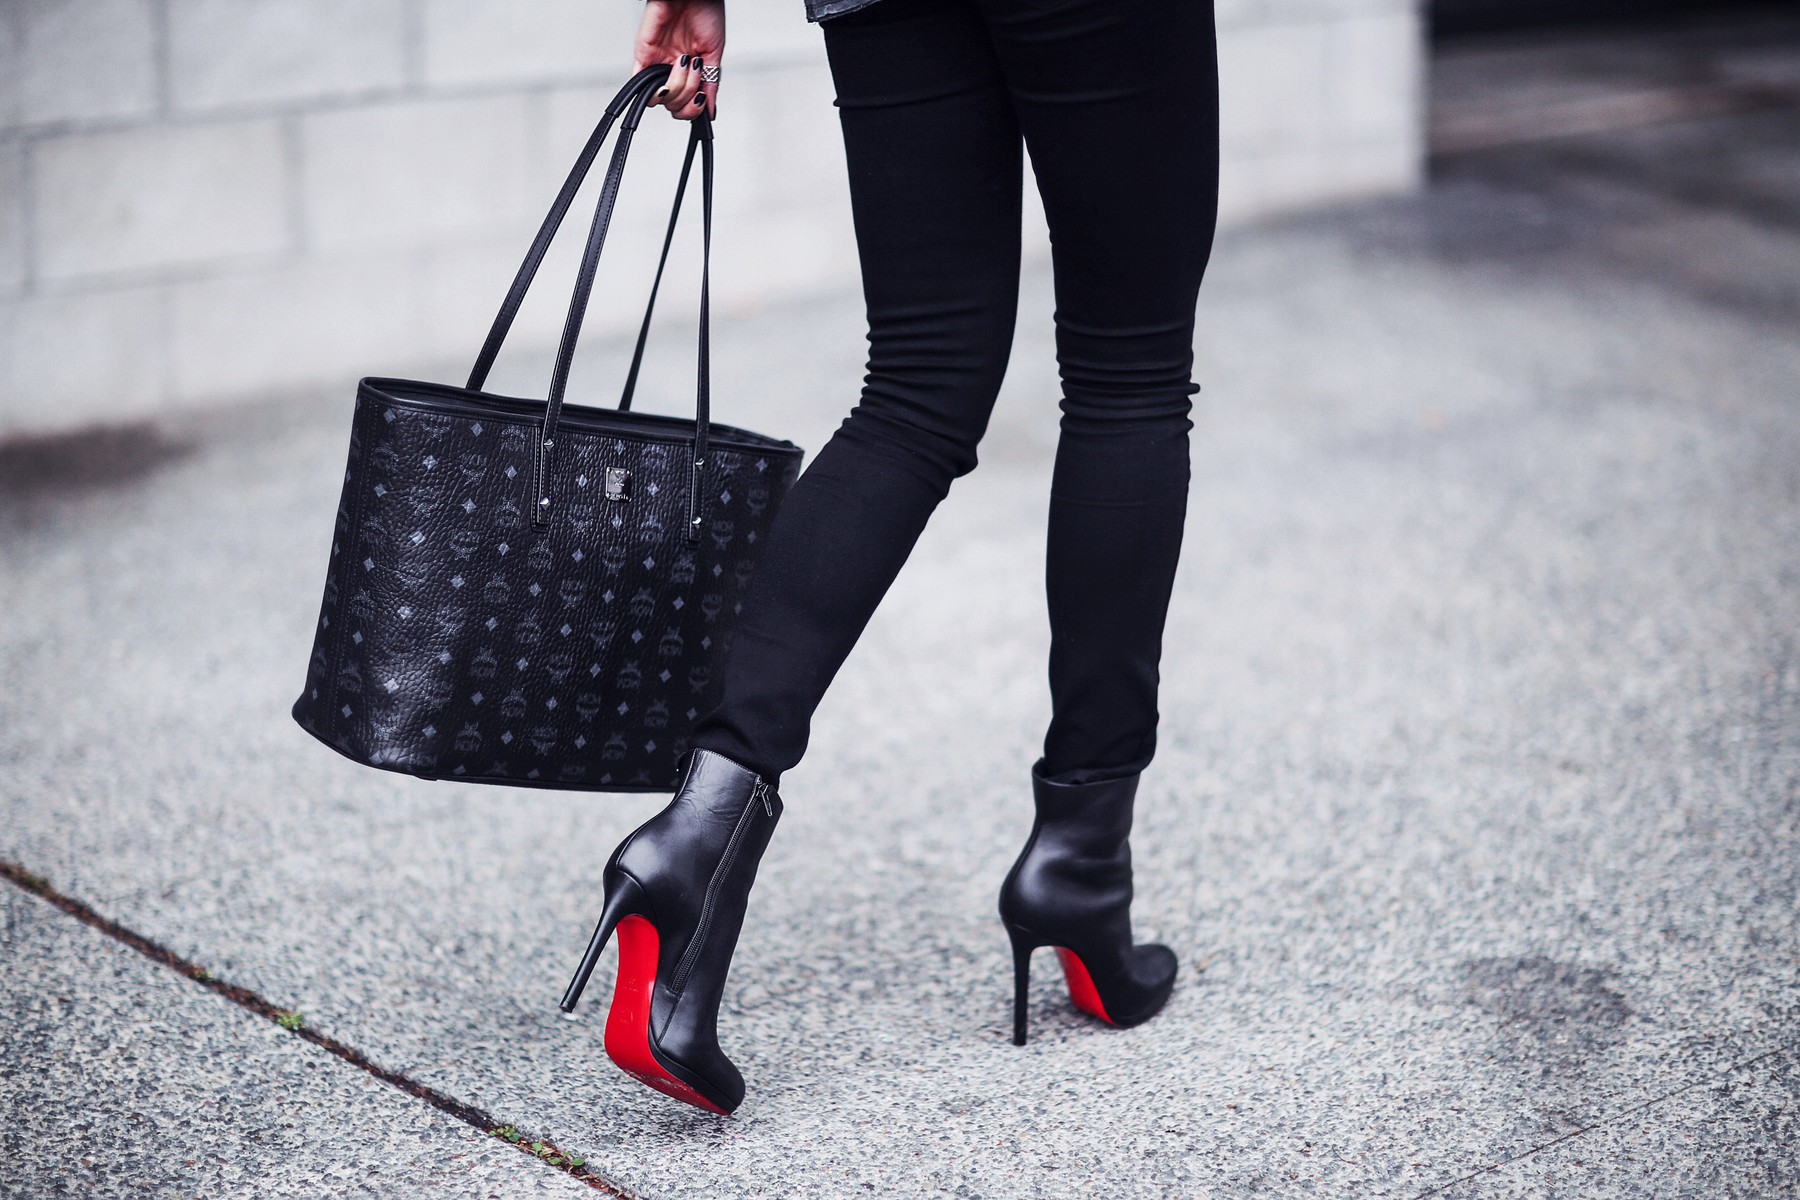 chic tote bag, black skinny jeans, black leather booties